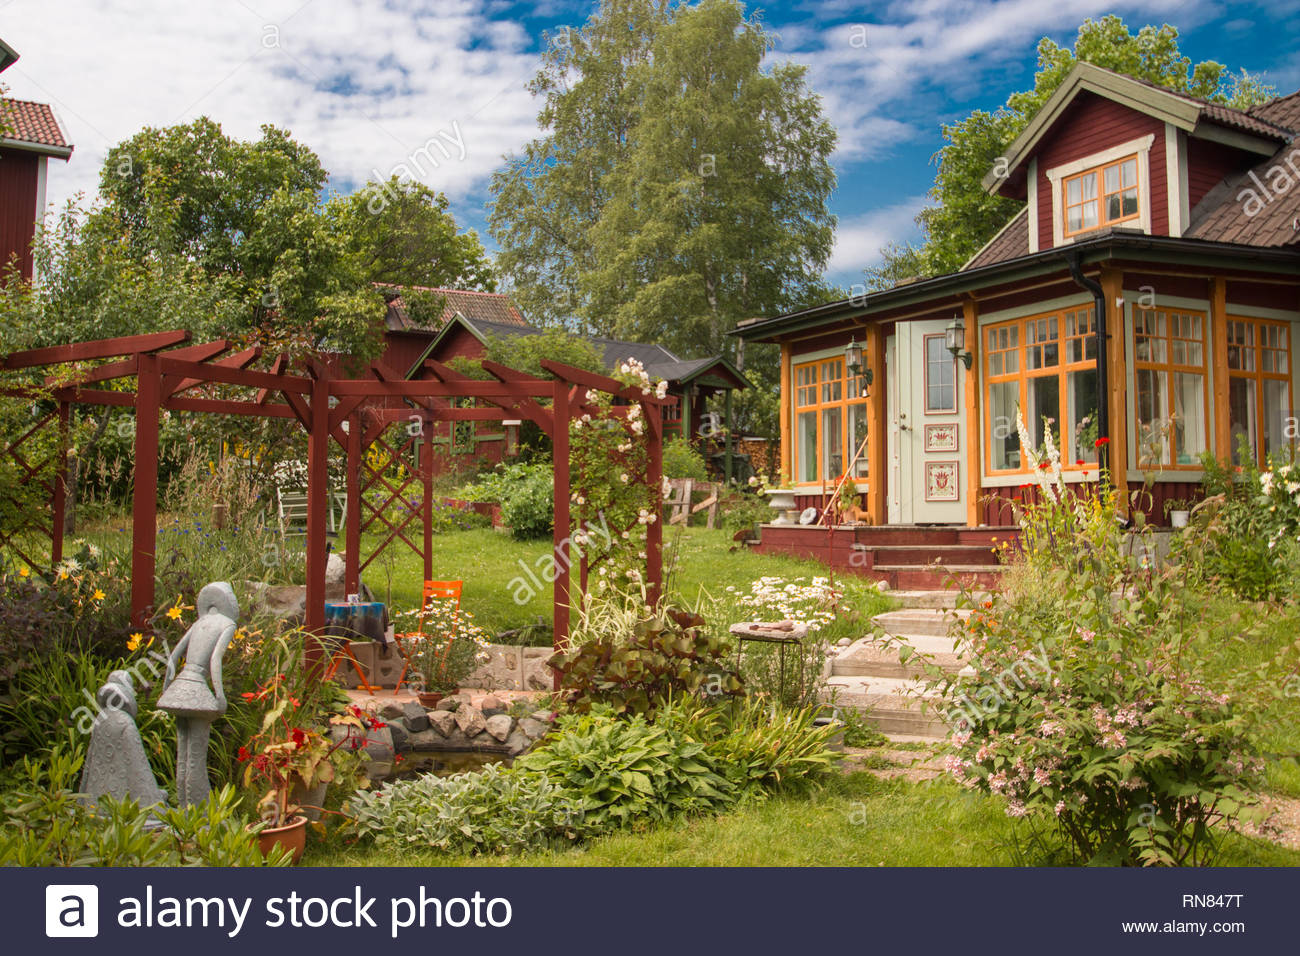 Sundborn/Dalarna/Sweden ,July04,2014- beautiful swedish house with a garden - Stock Image